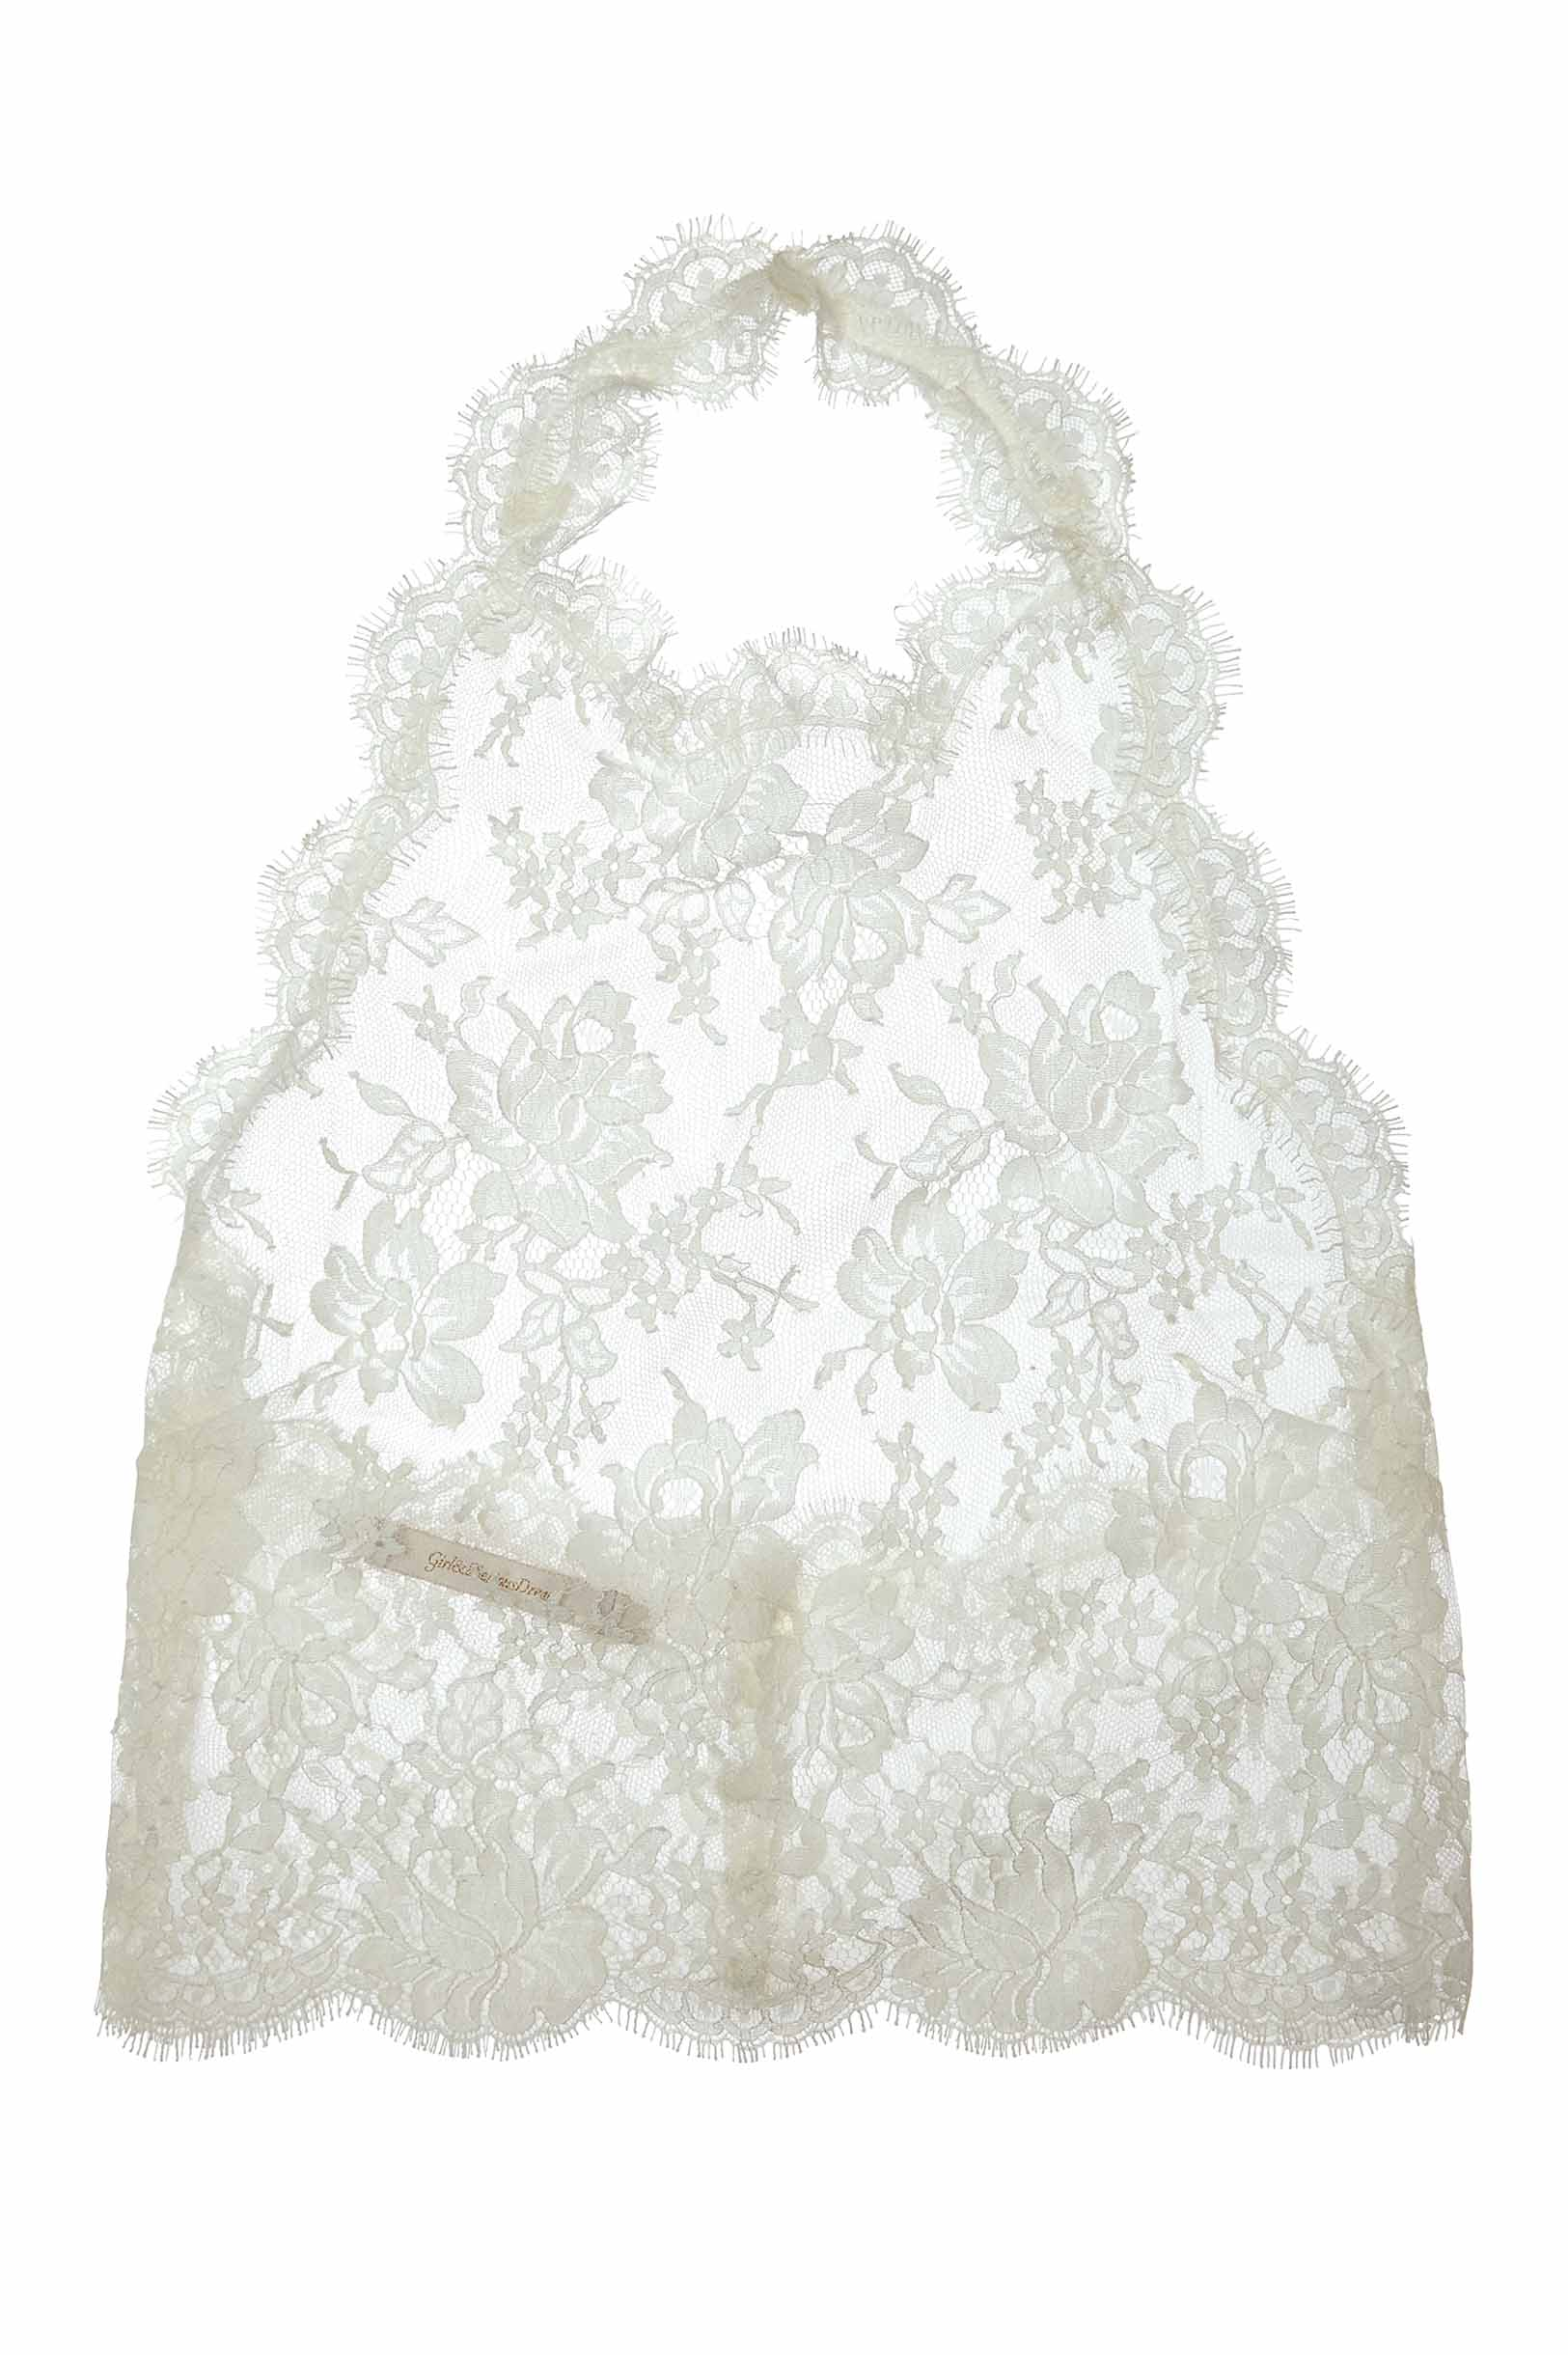 Dominique halter French lace top cover-up in Ivory